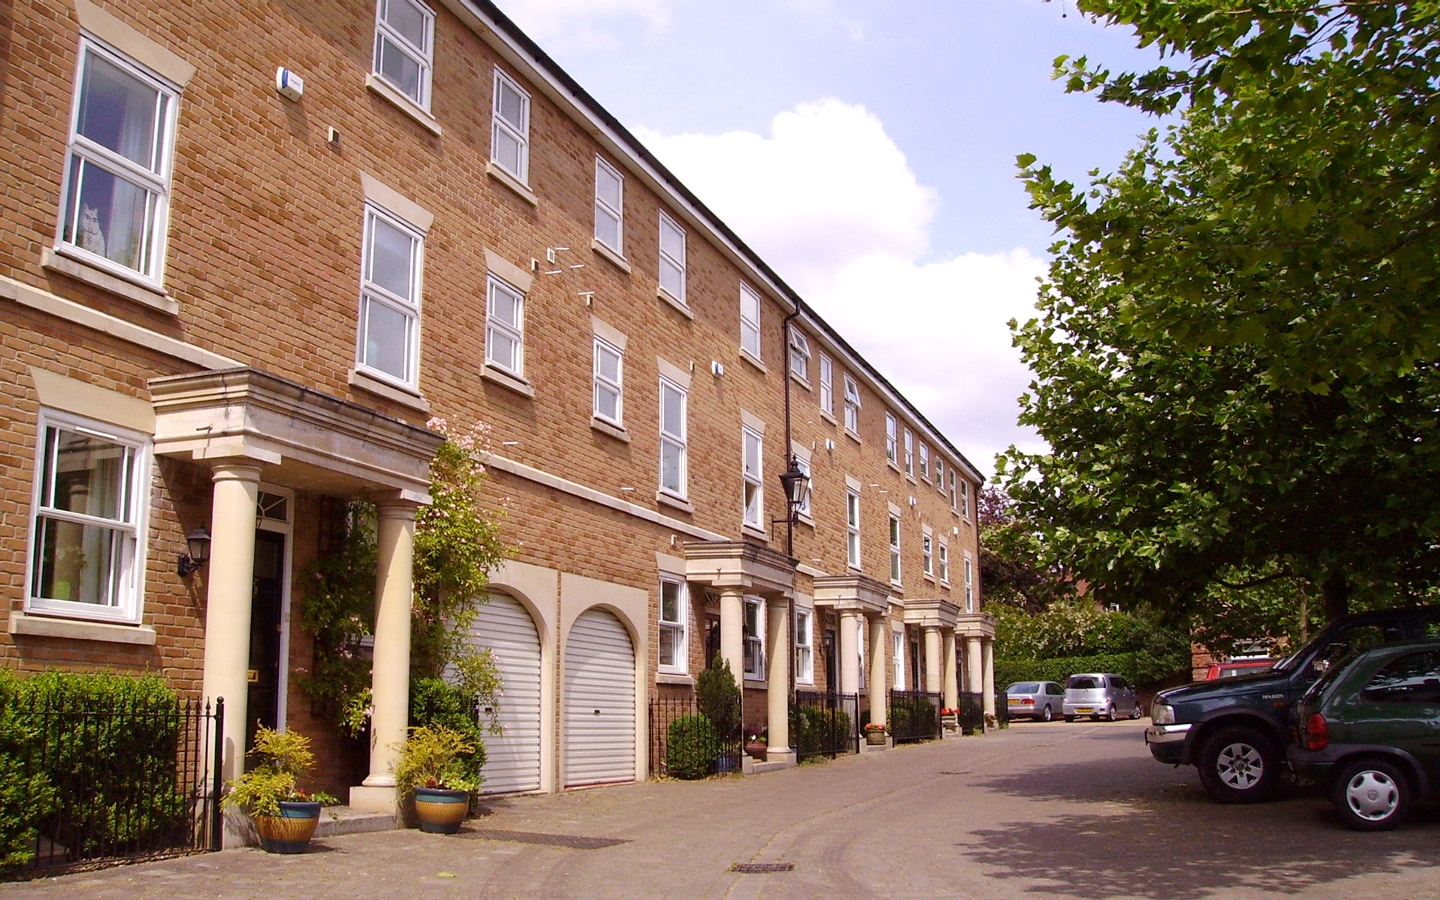 Large 40 Unit Housing Scheme - Bury St Edmunds